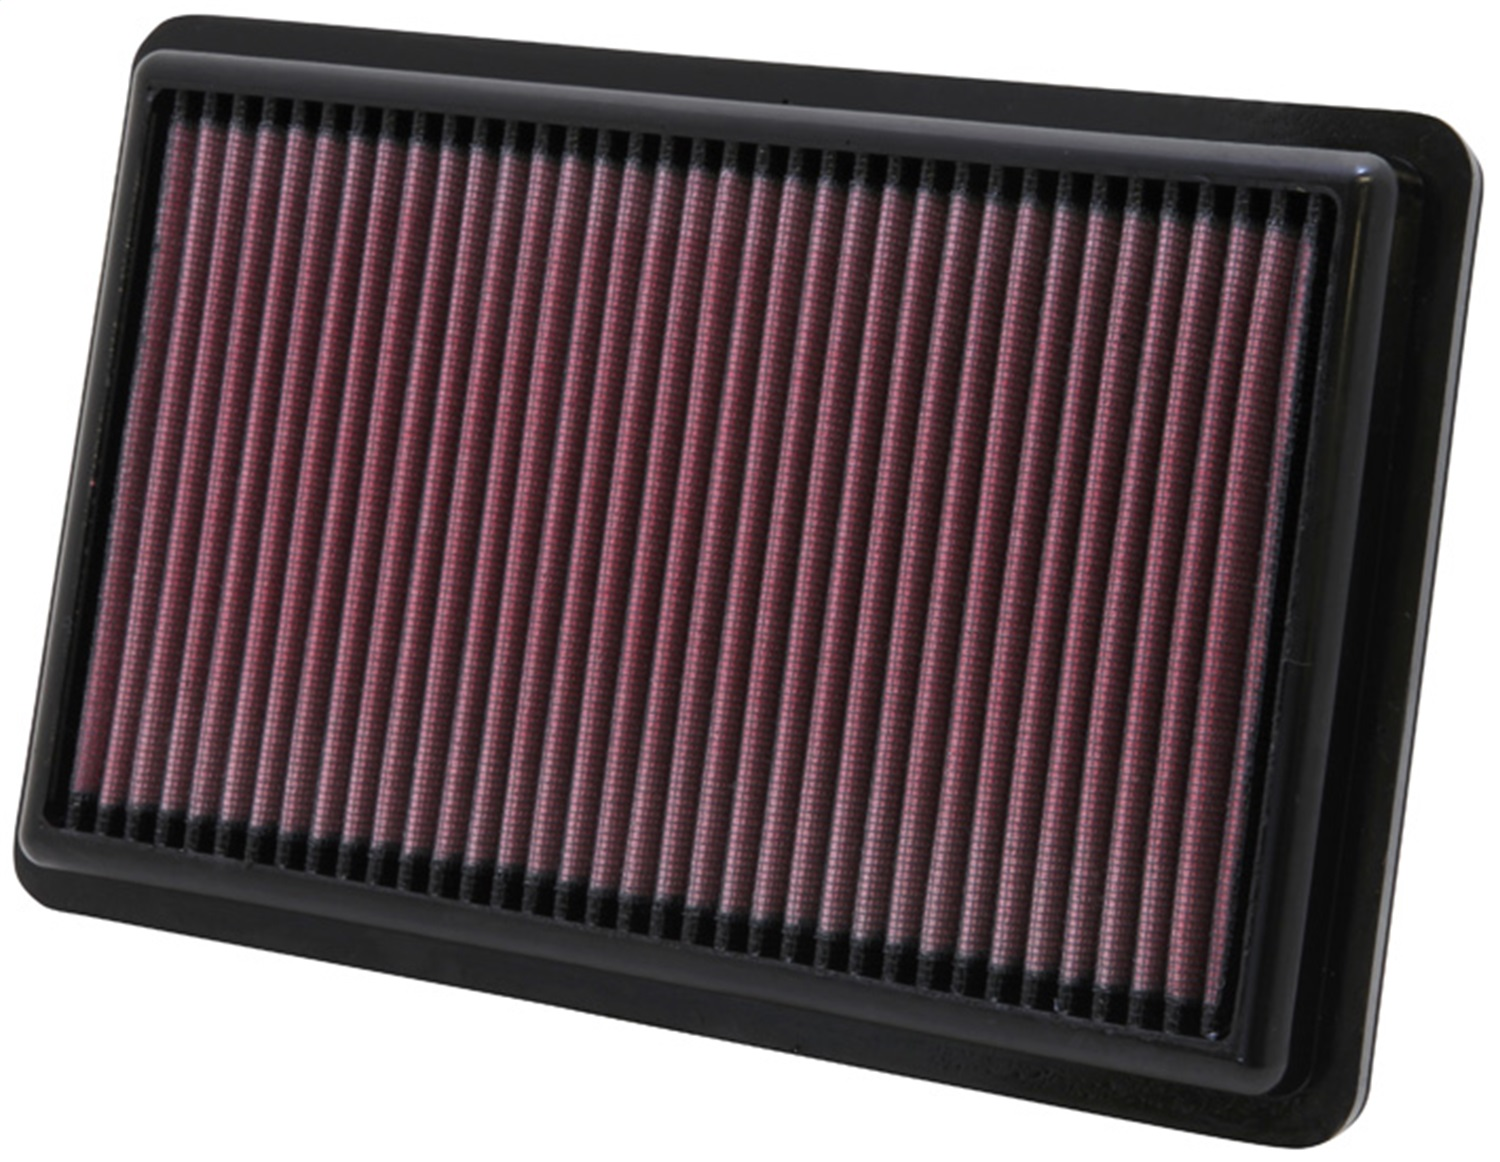 K&N Filters 33-2454 Air Filter Fits 10-14 MDX ZDX 33-2454